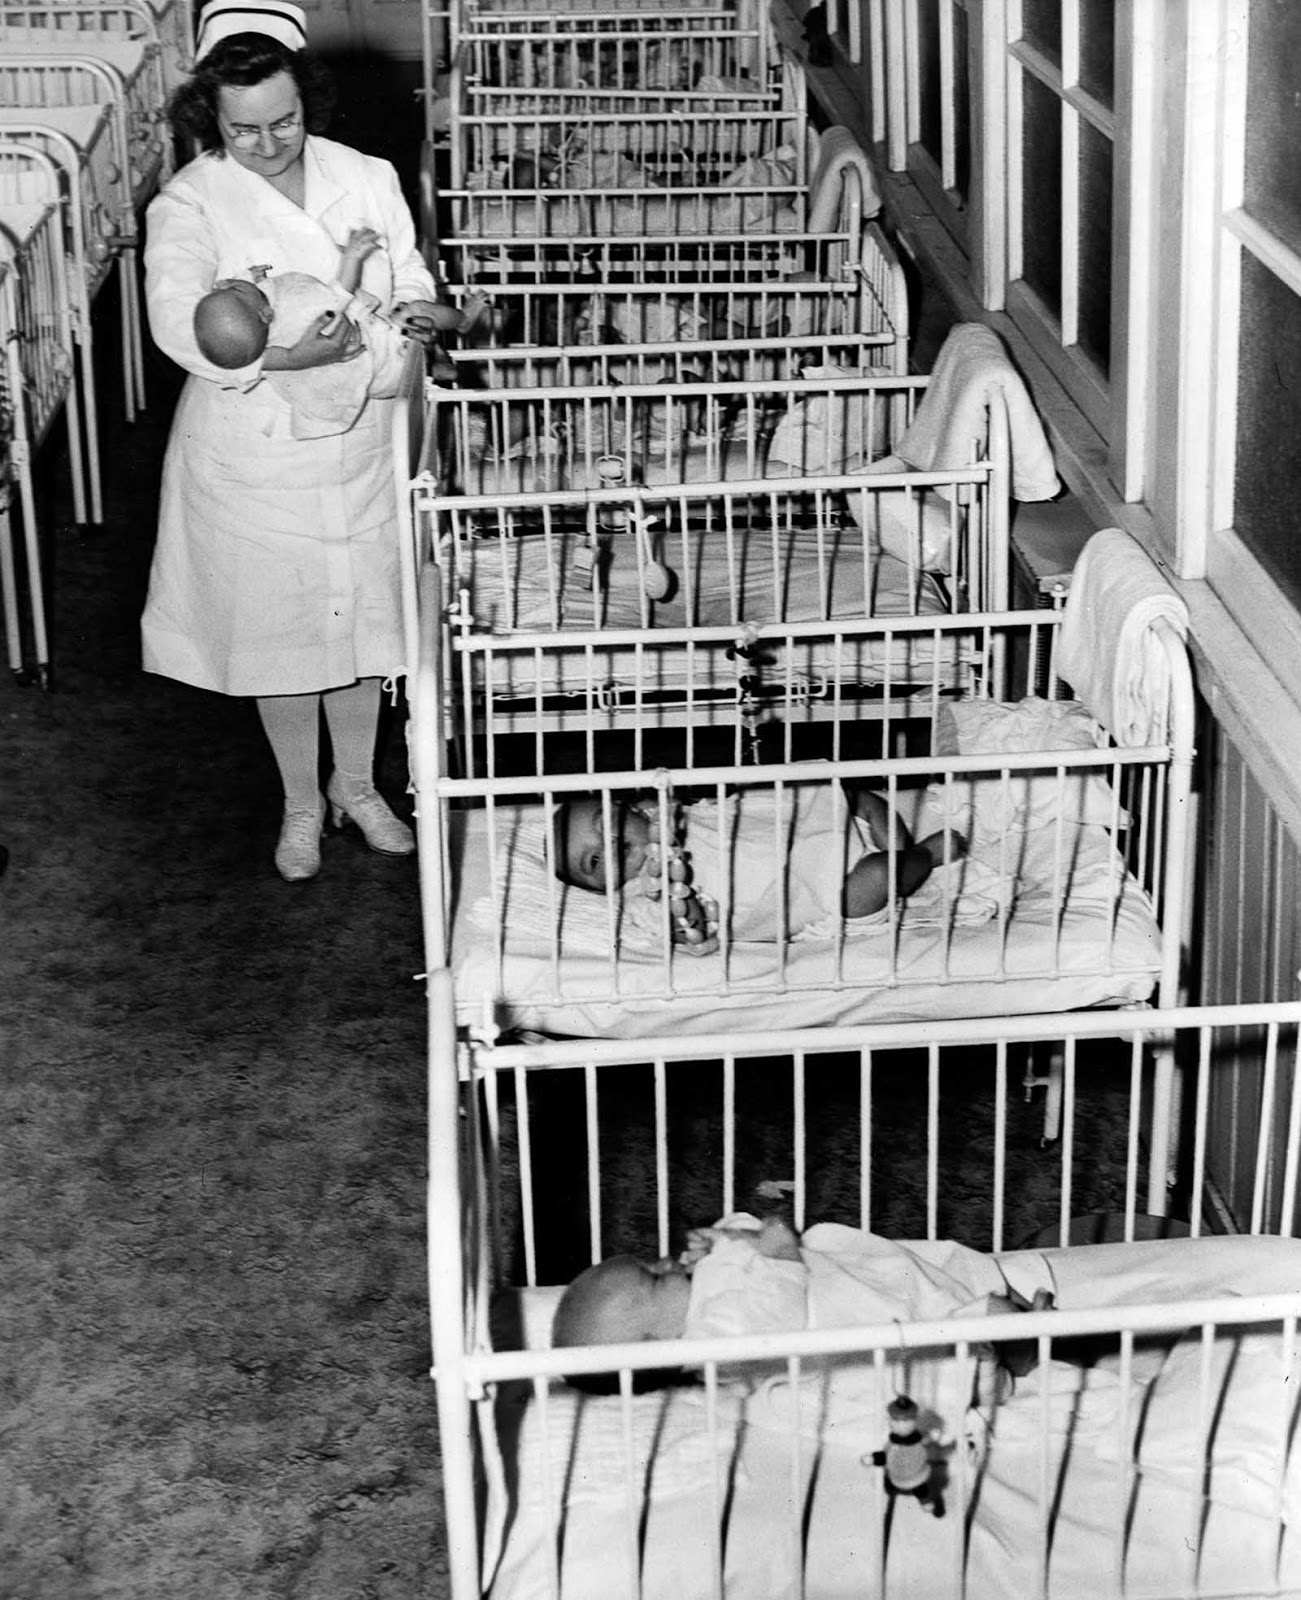 A nurse cares for one of many infants at St. Ann's Infant Asylum in Washington, D.C. 1946.